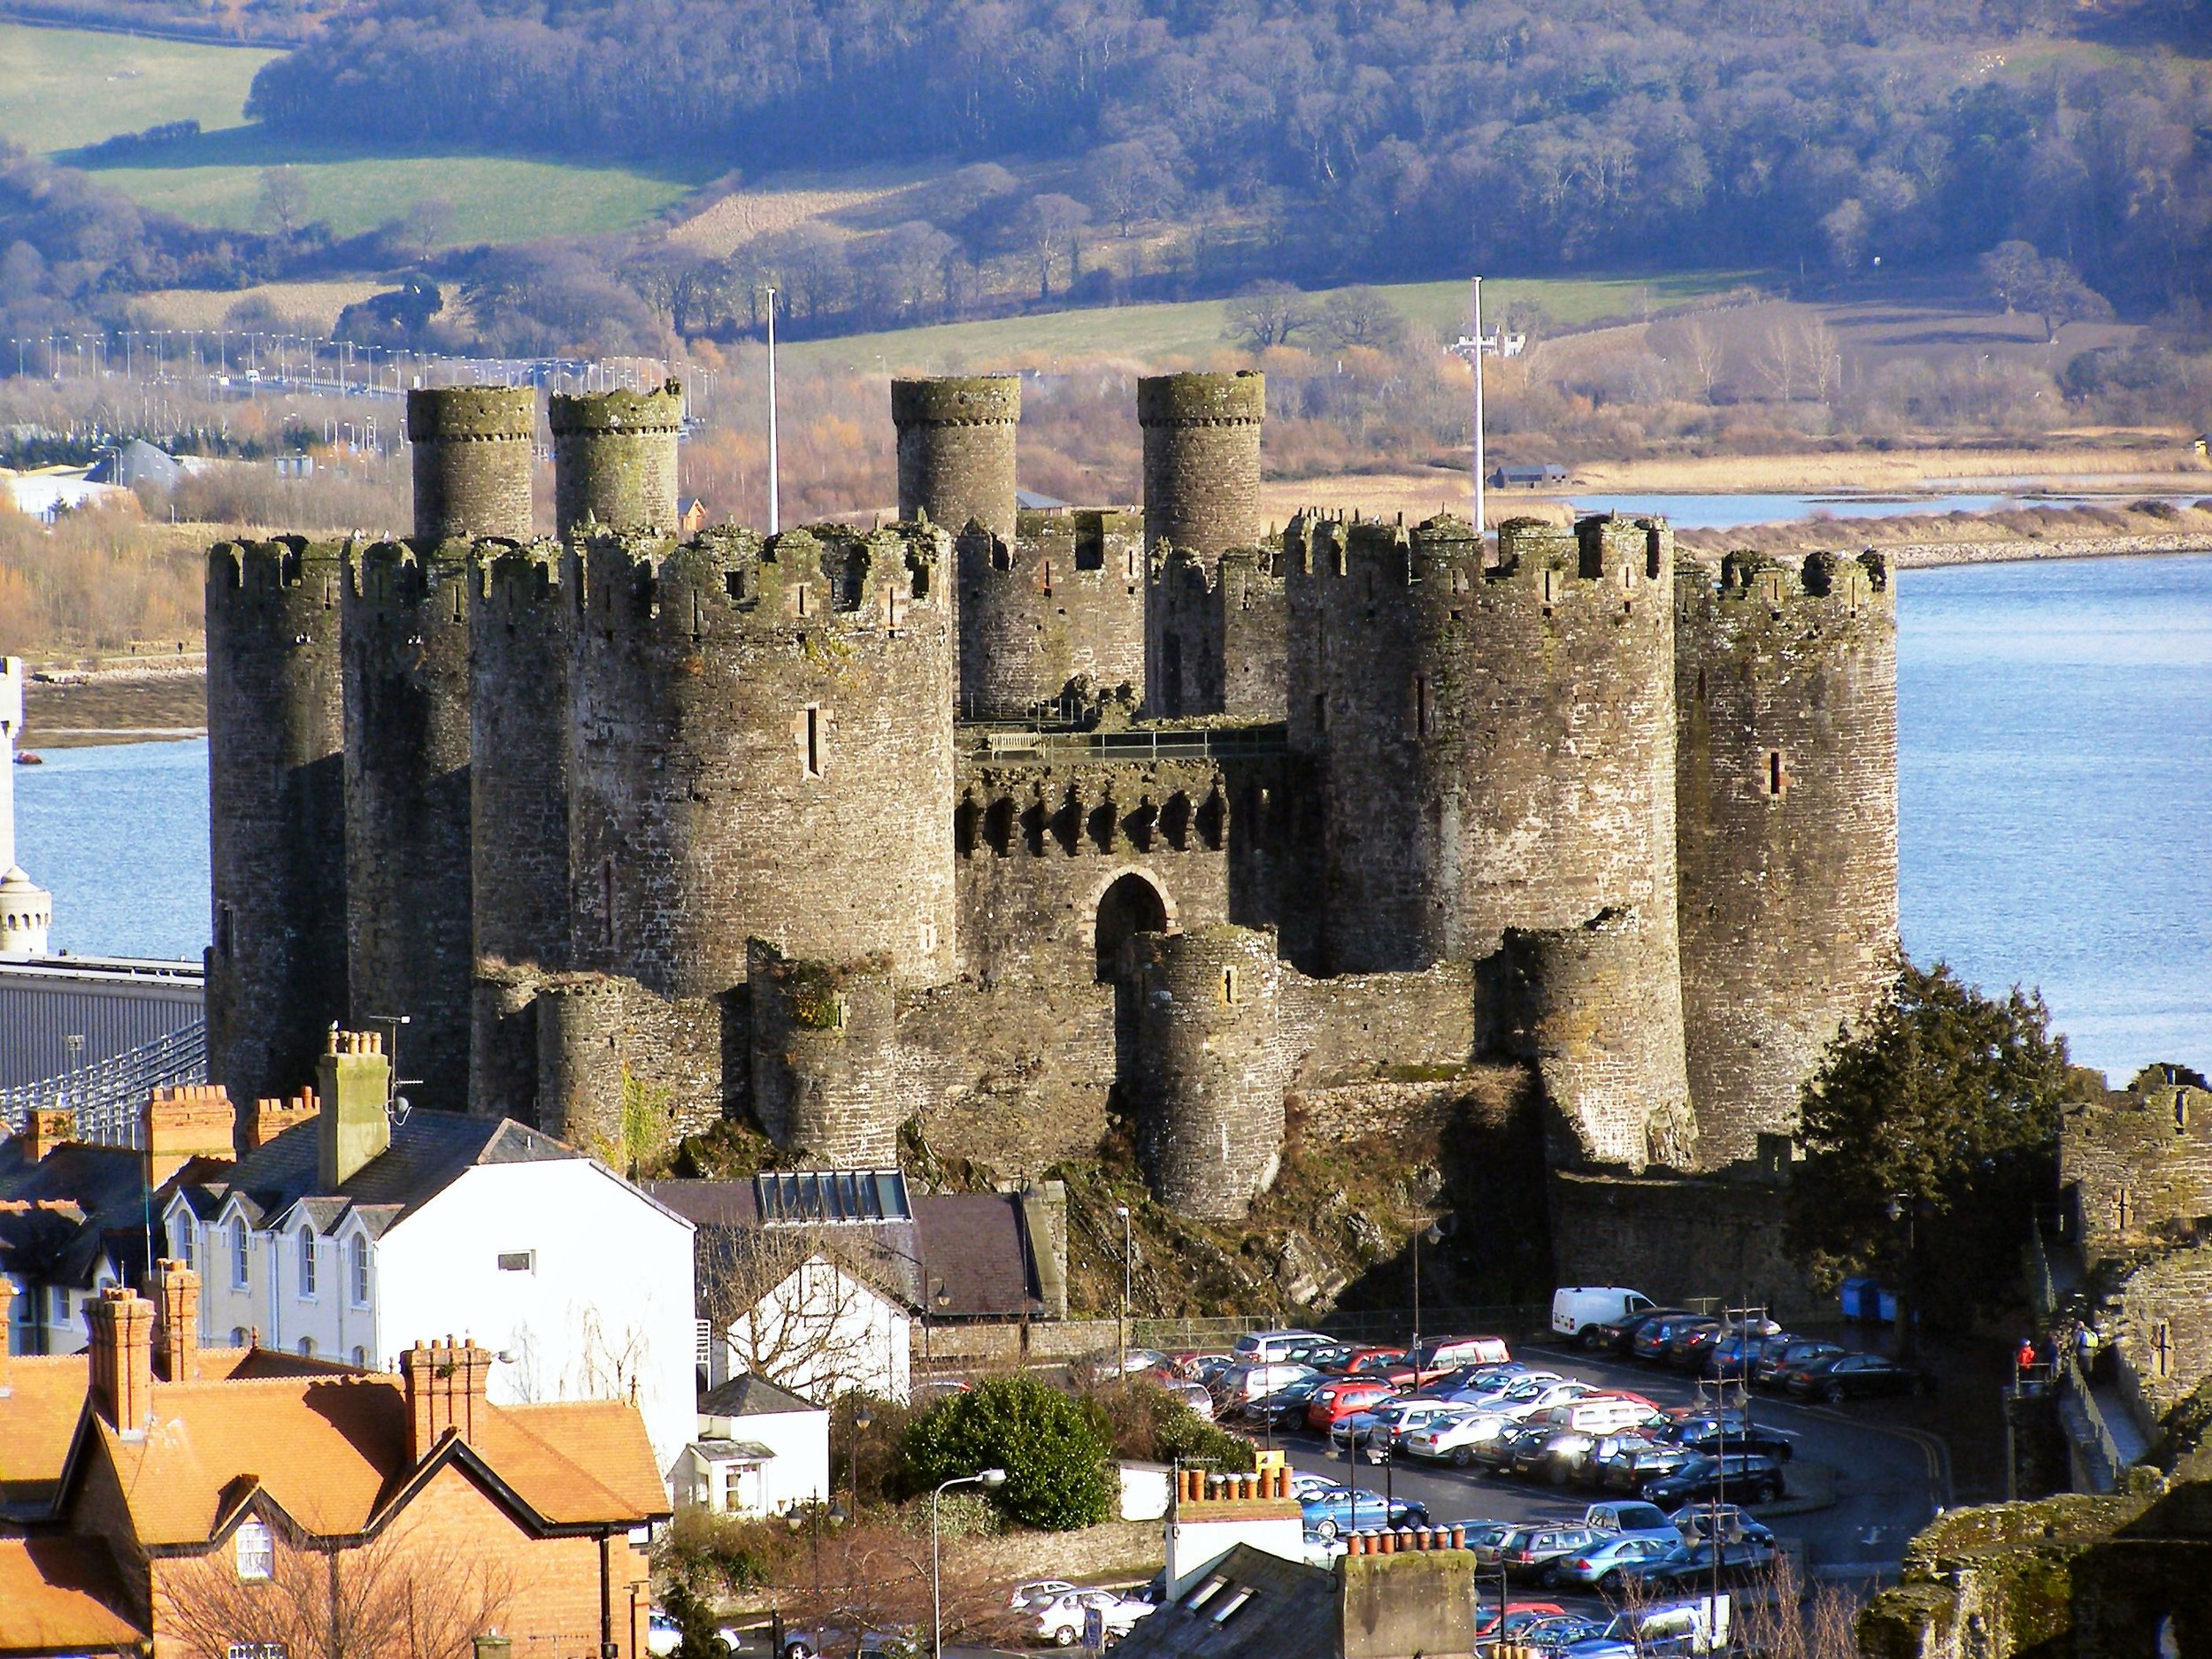 Conwy_Castle_and_car_park_from_Town_Walls_-_geograph.org.uk_-_1723358.jpg